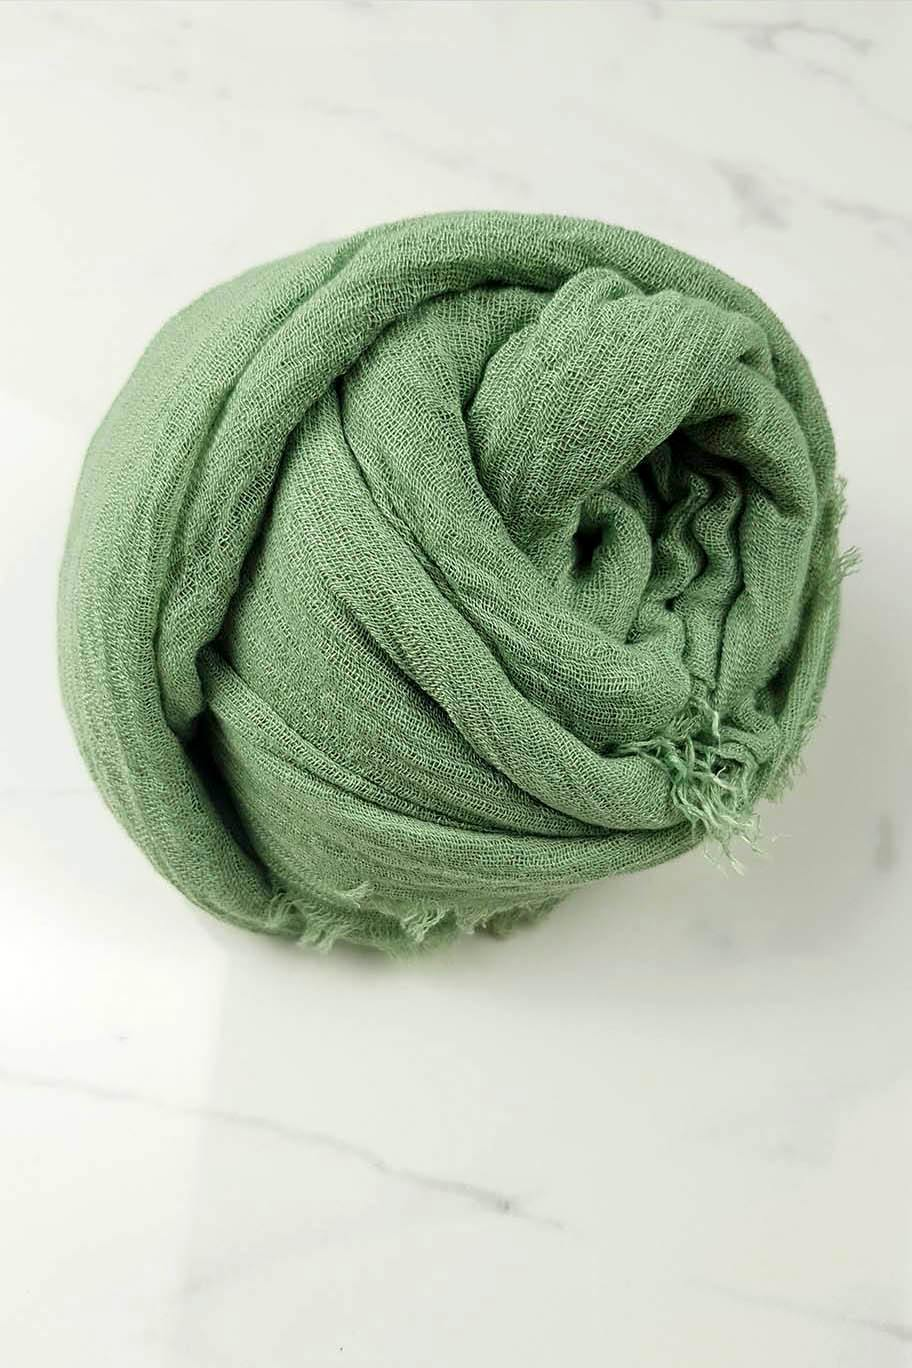 Pistachio Green Crinkle Cotton - Crinkle Cotton Hijabs - The Modest Look